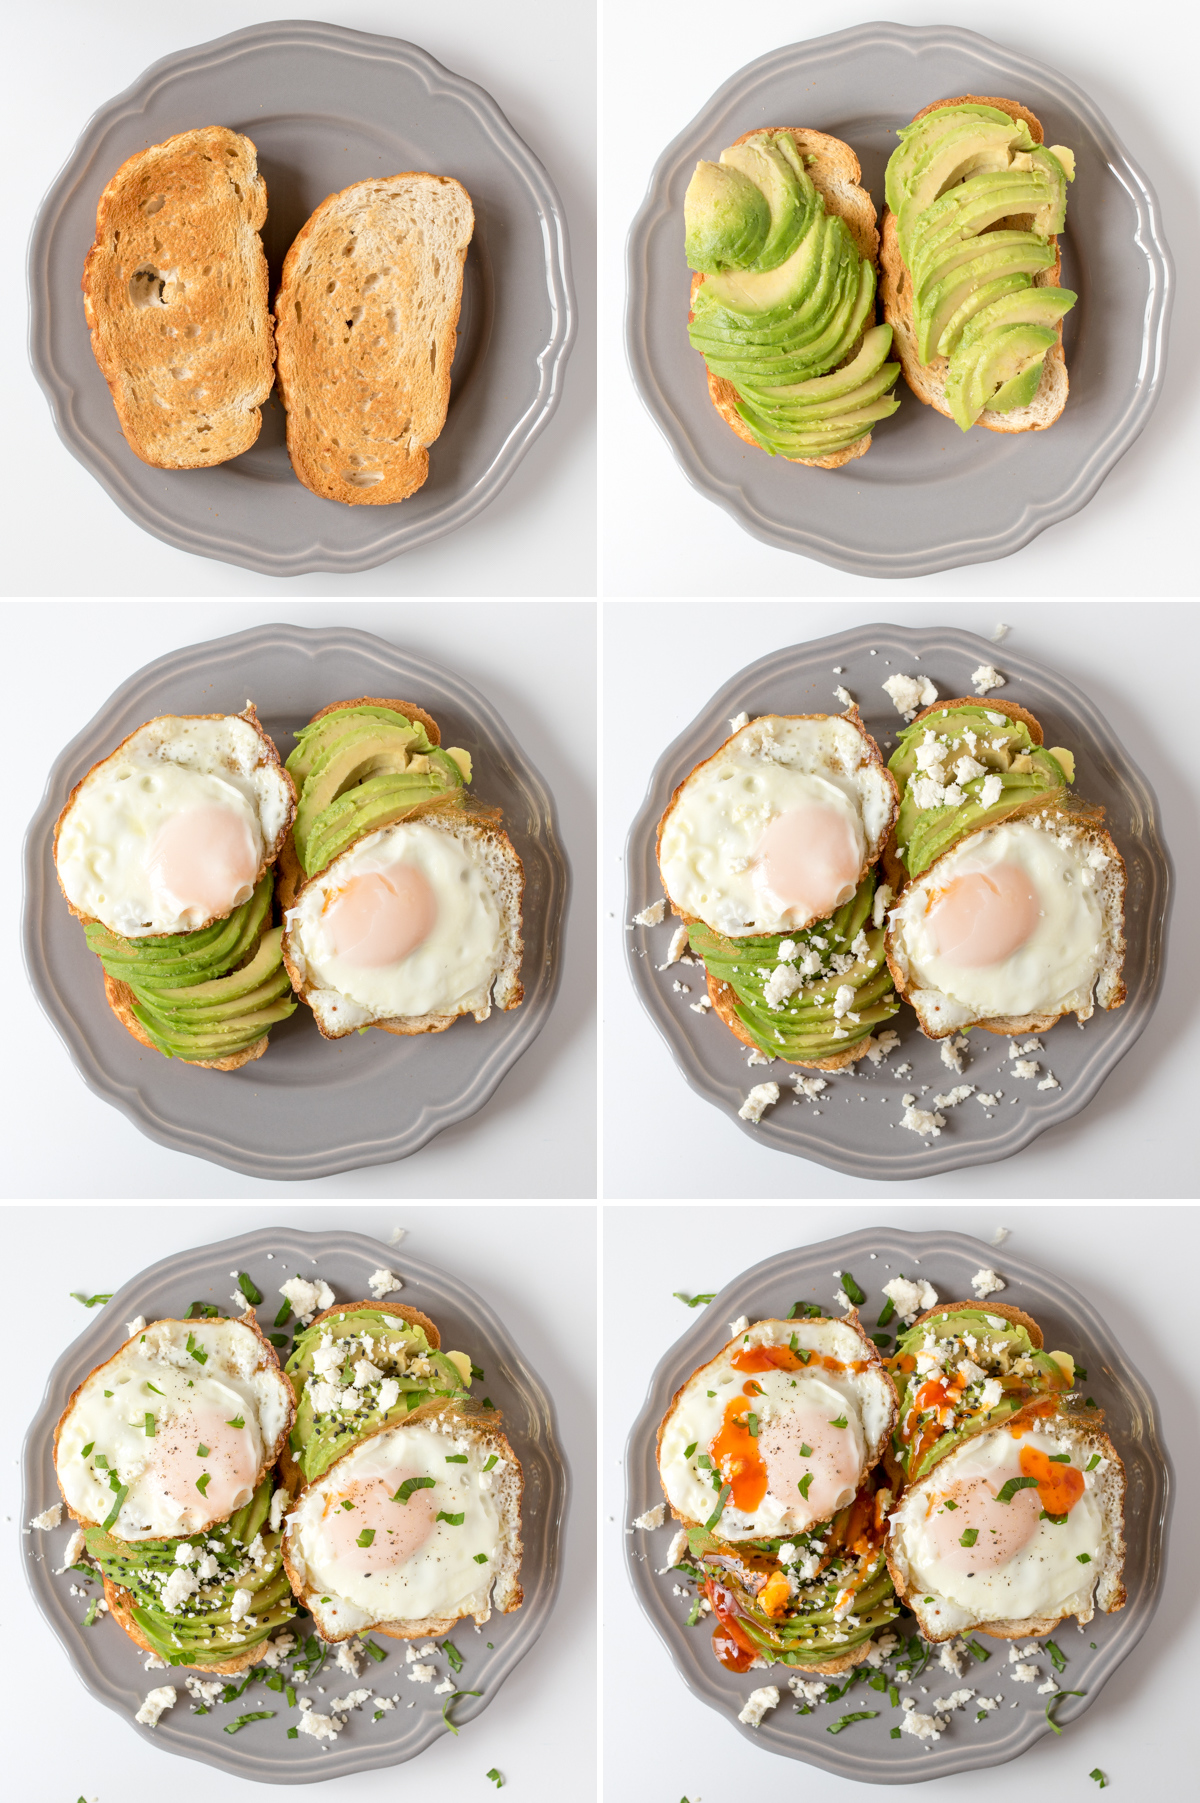 Avocado breakfast toasts step 4 collage